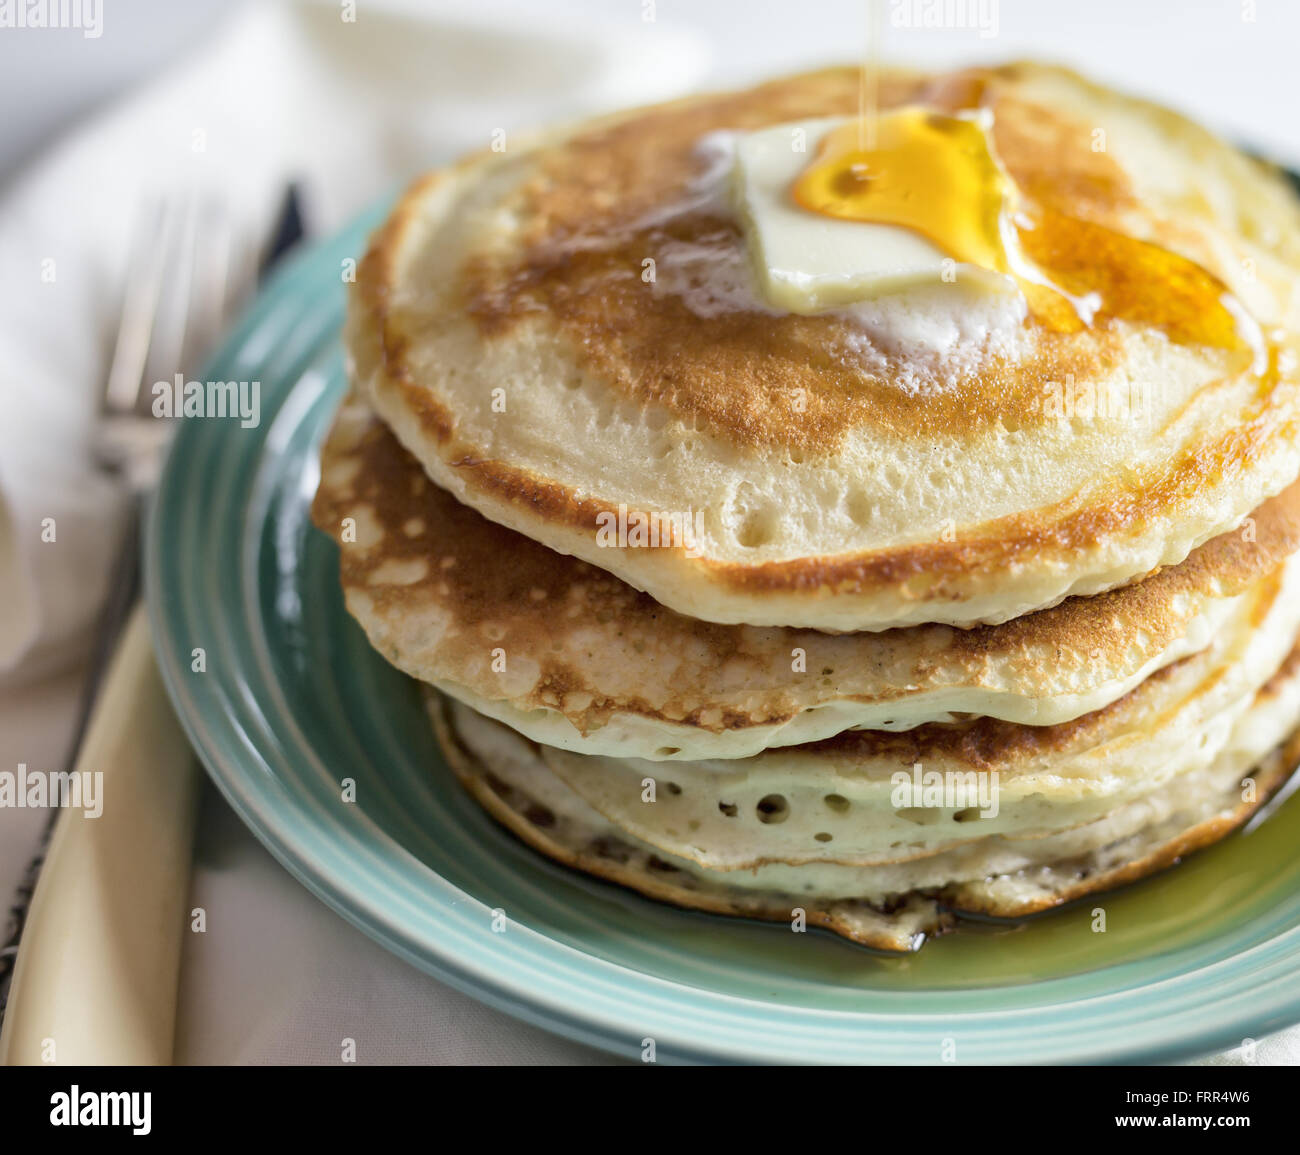 Stack of pancakes with butter and maple syrup. - Stock Image